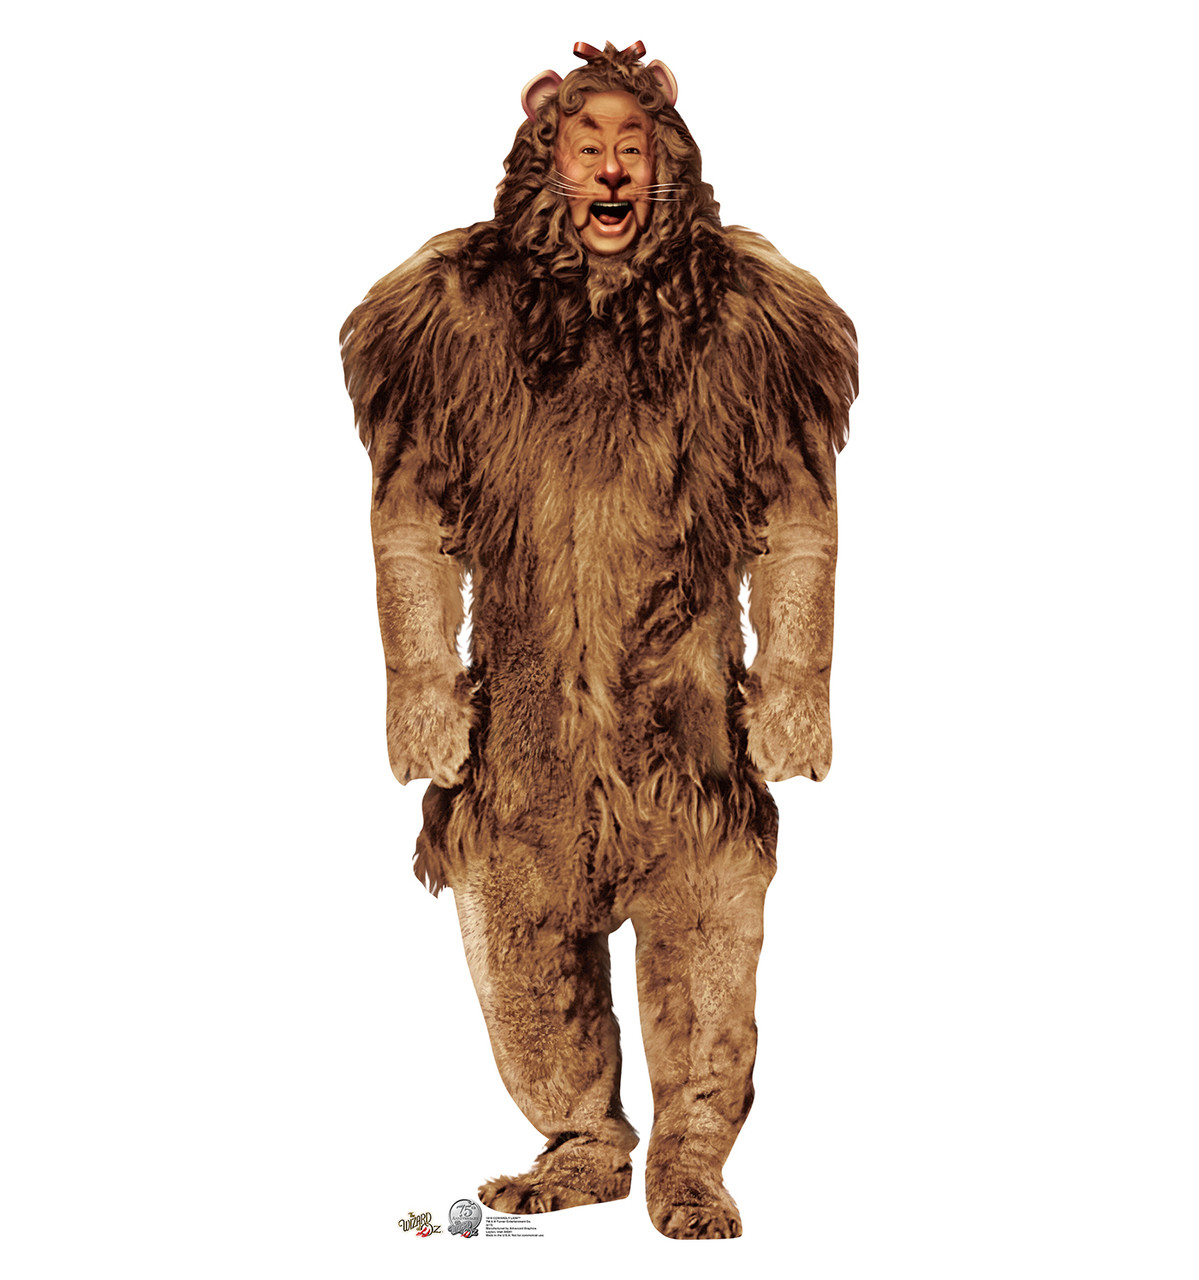 Cowardly Lion - Wizard of Oz - Cardboard Cutout 1616